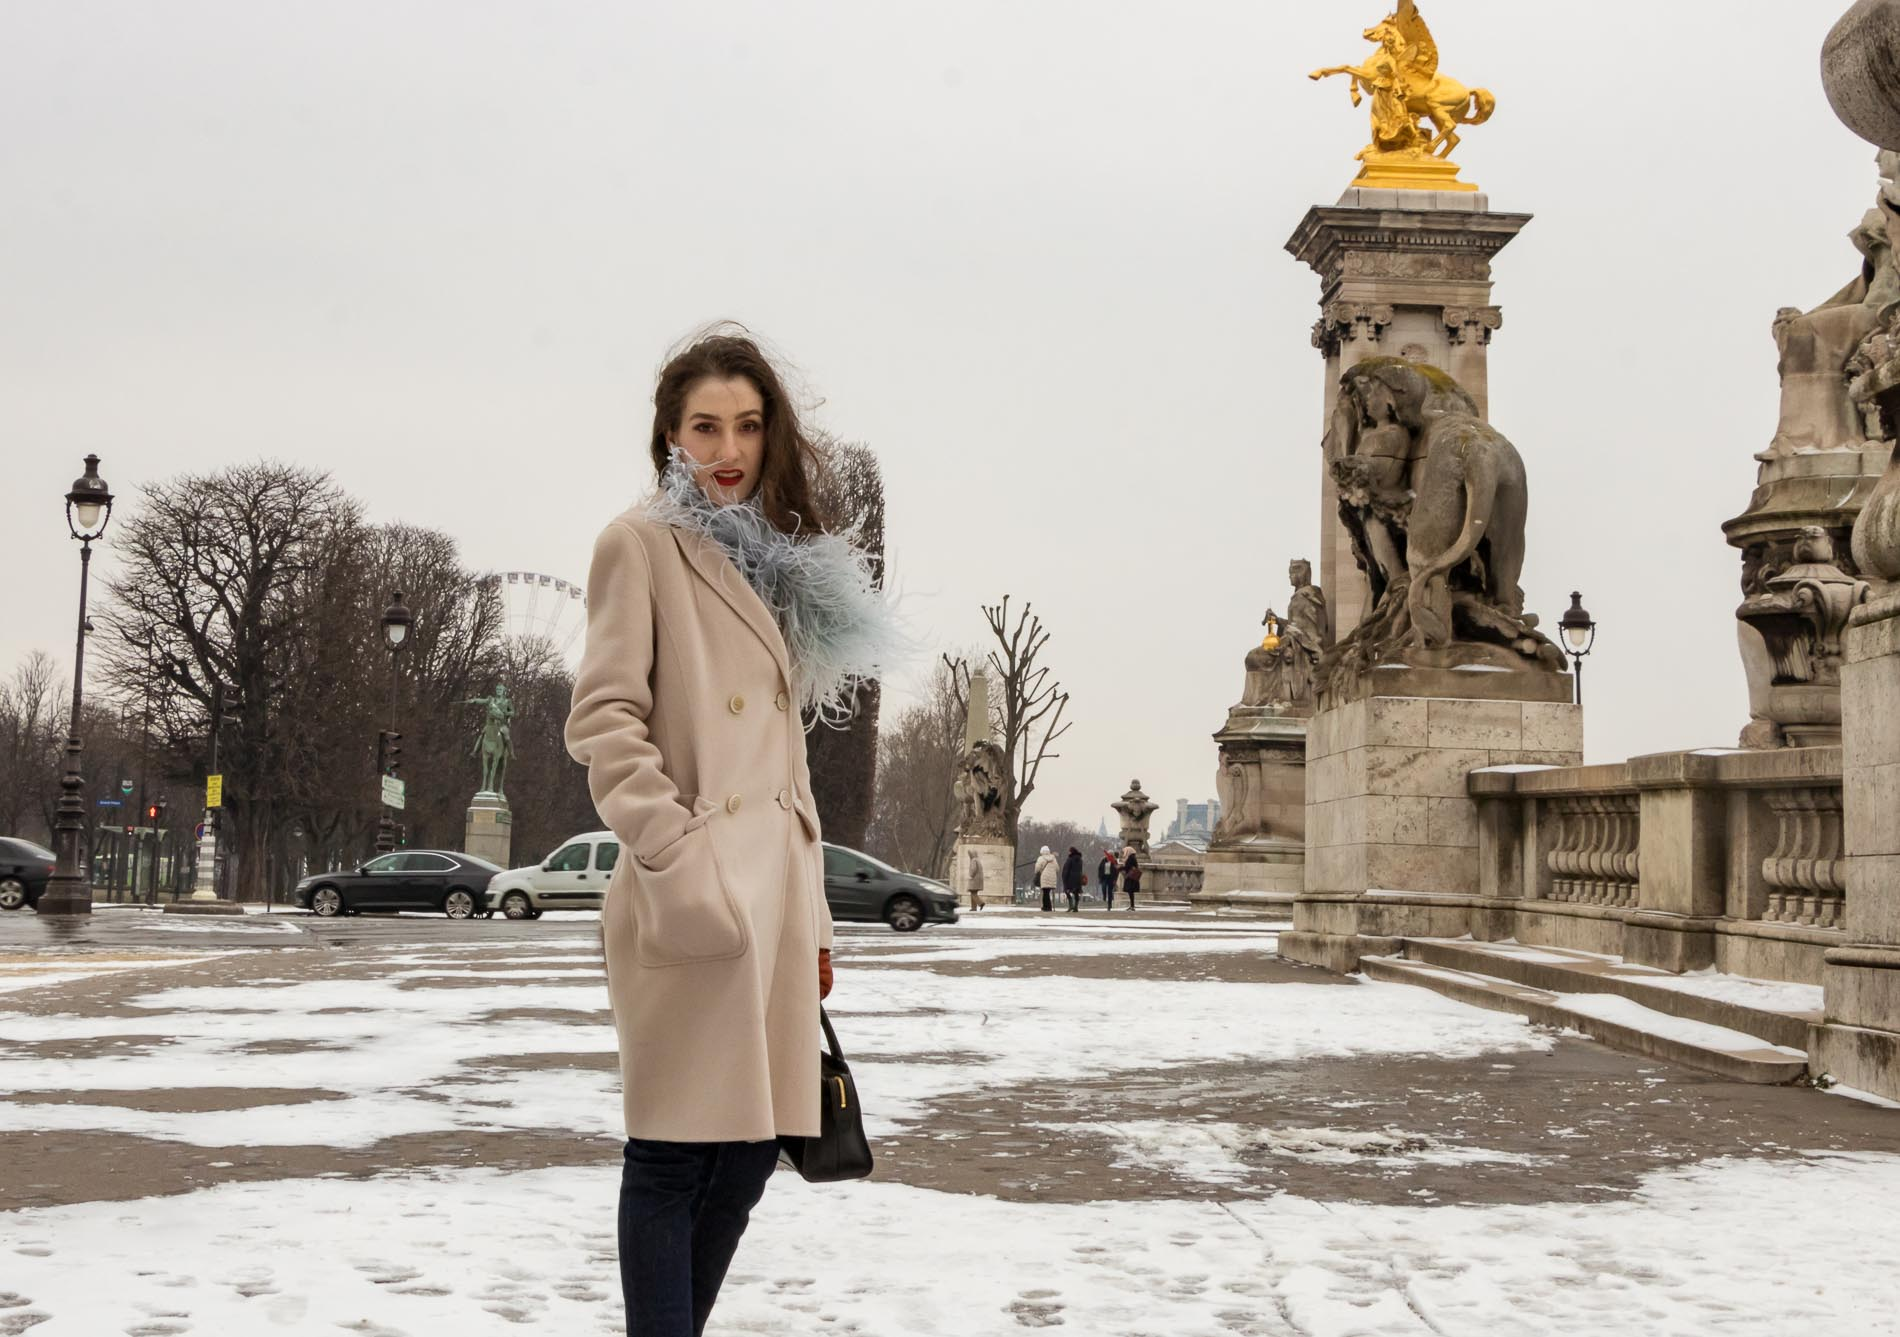 Fashion Blogger Veronika Lipar of Brunette from Wall Street wearing feathers, Weekend Maxmara coat, dark denim jeans, black sock boots, leather gloves, standing at Pont du Alexandre III in Paris during Paris fashion week AW 2018/19